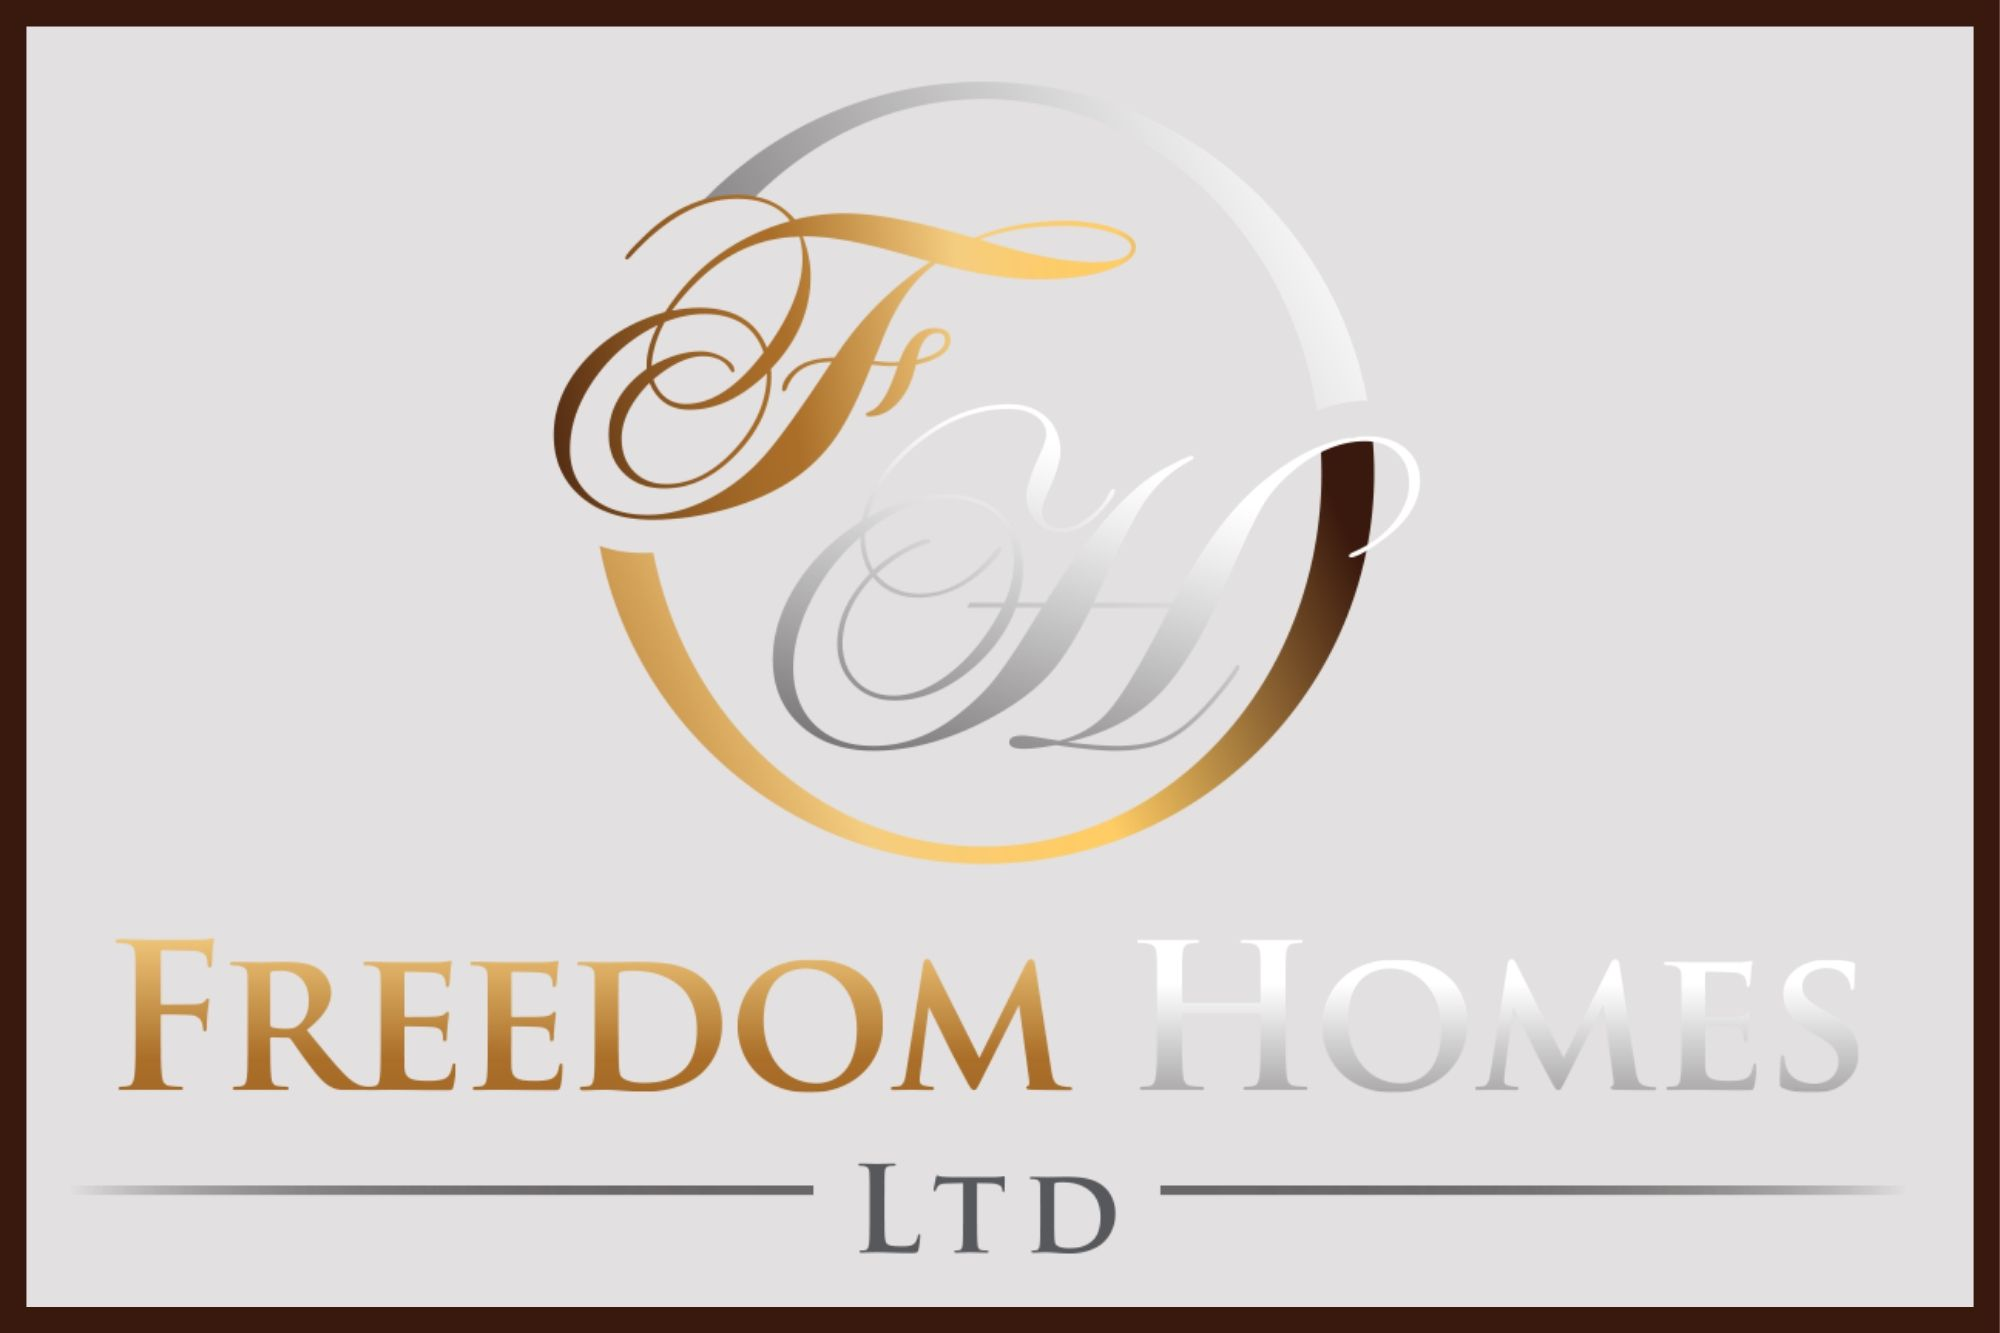 Freedom Homes LTD